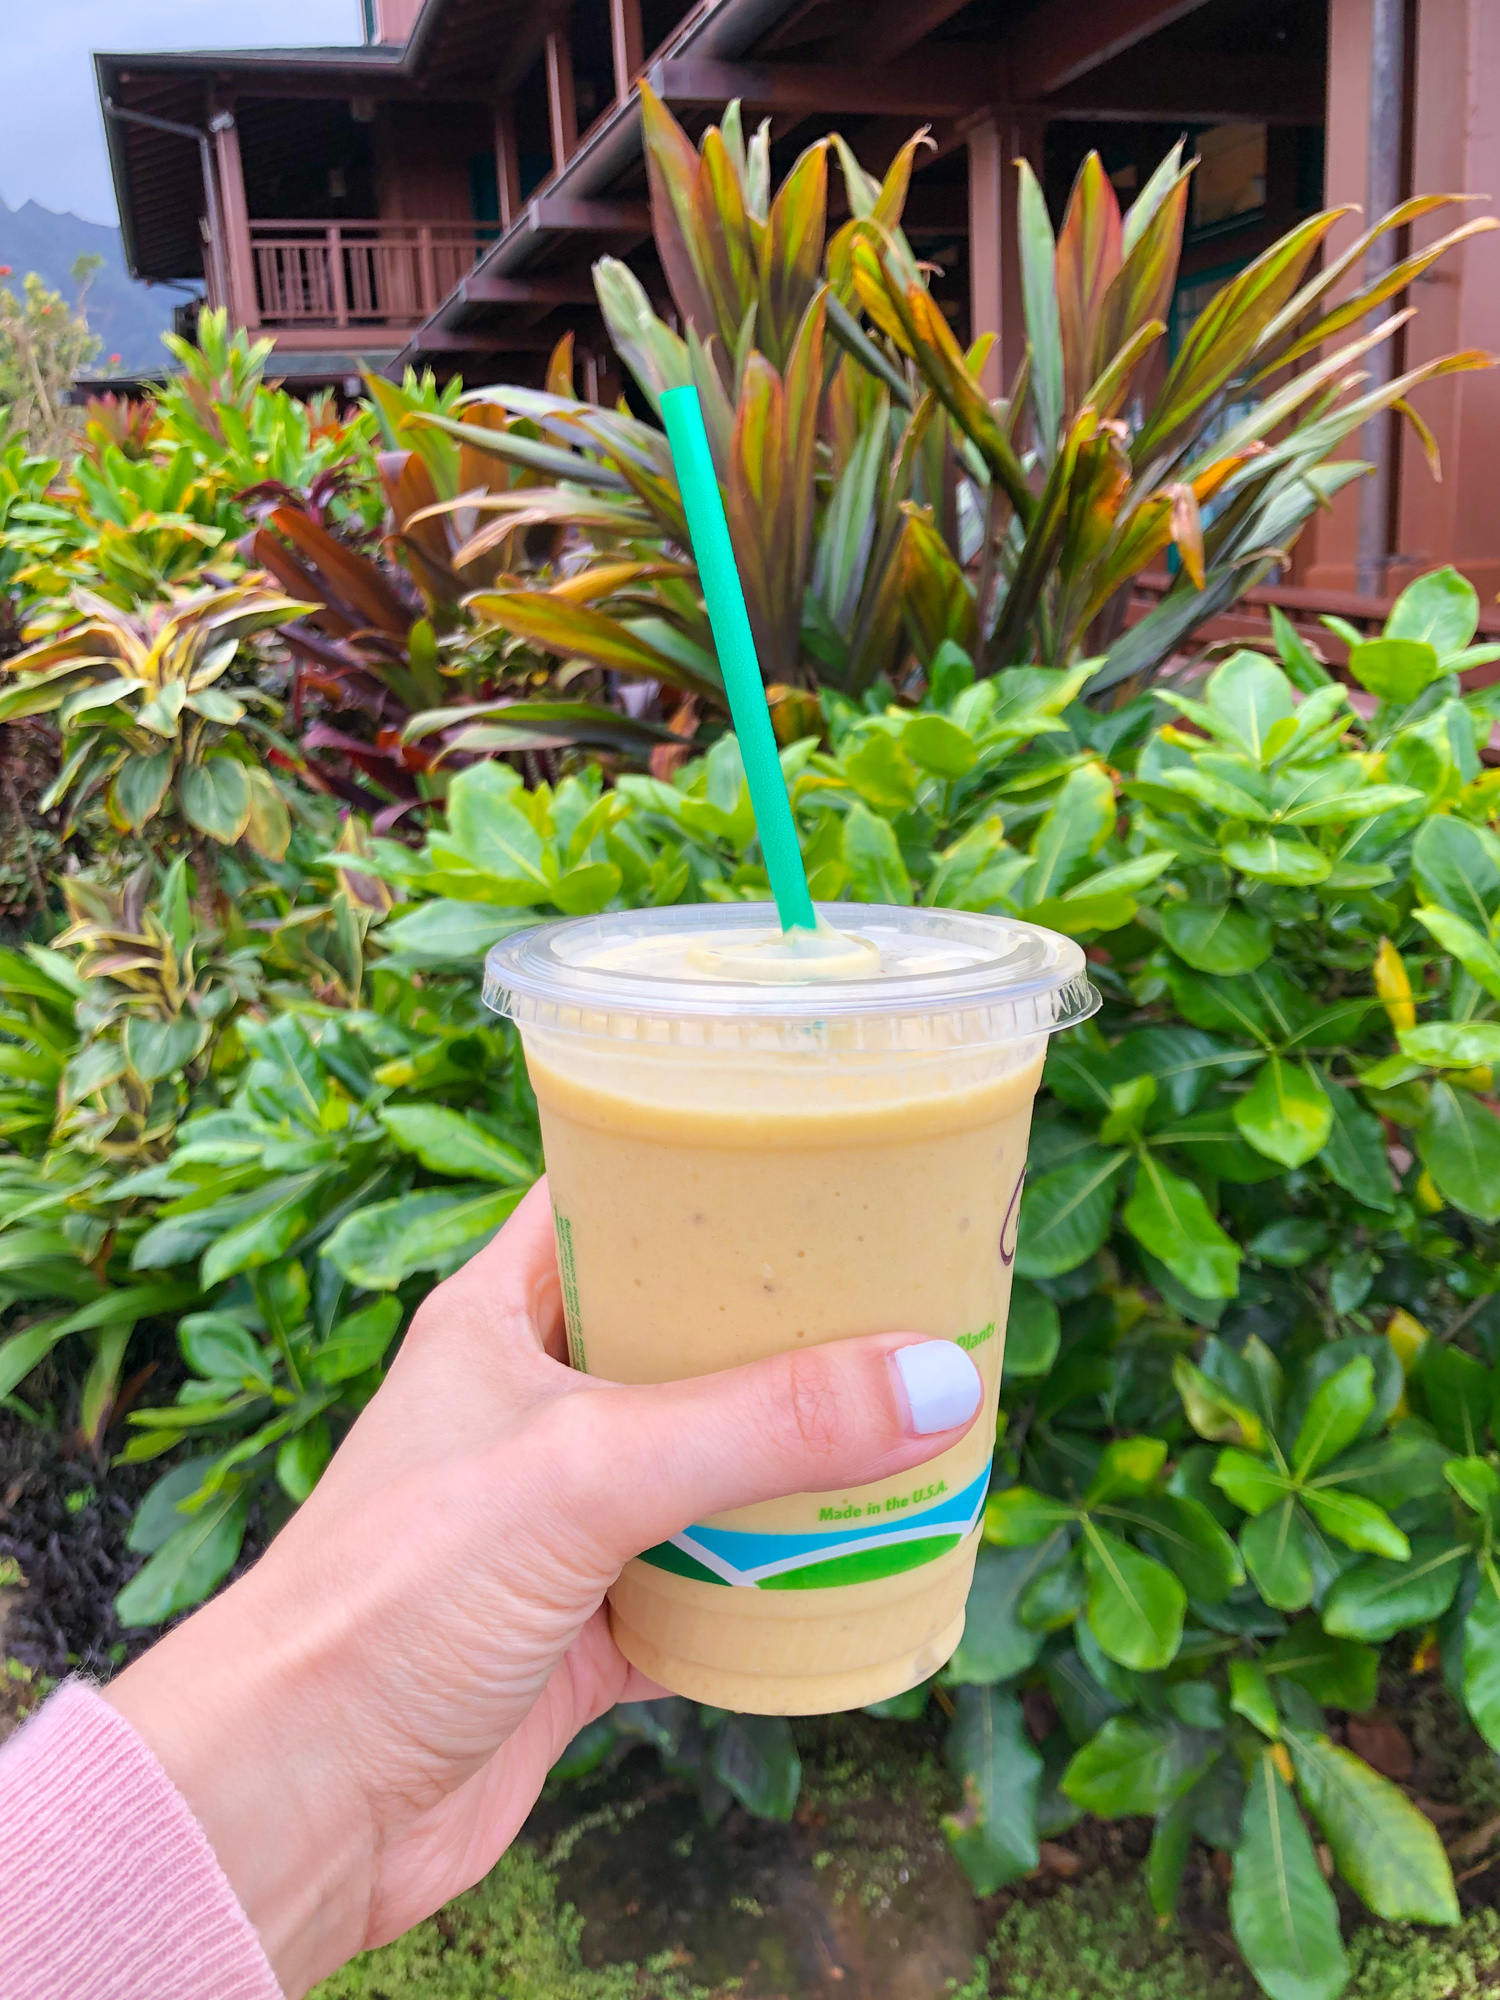 Hand holding smoothie from Hanalei Bread Company in Kauai